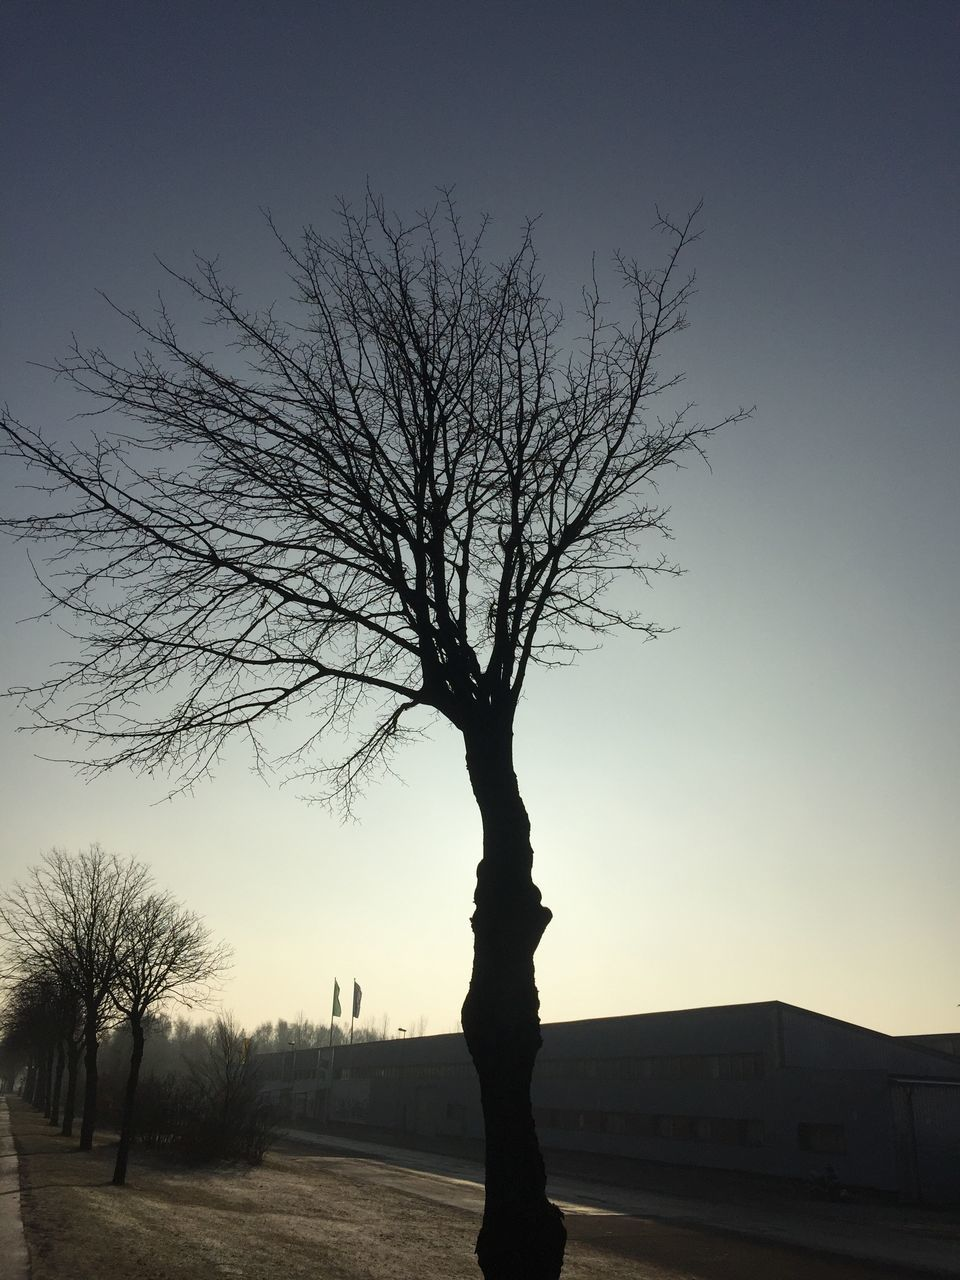 bare tree, tree, branch, clear sky, sky, outdoors, silhouette, nature, lone, scenics, landscape, sunset, beauty in nature, no people, day